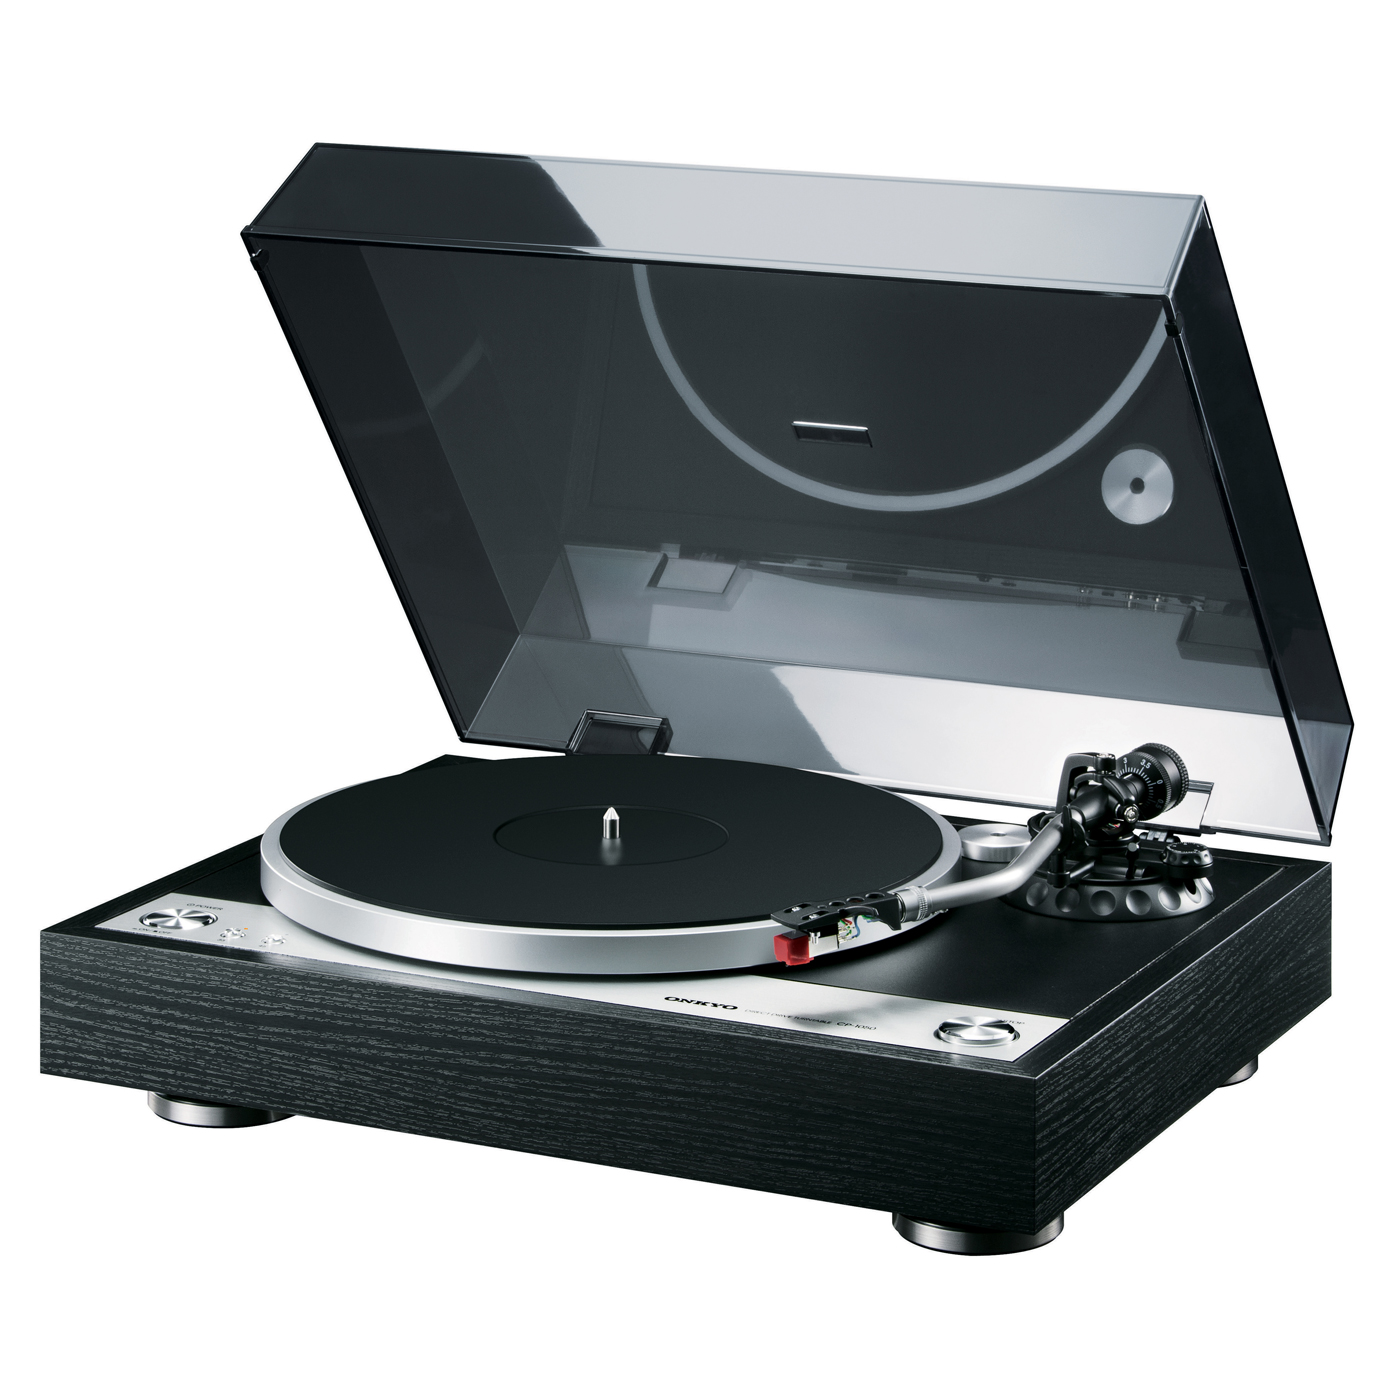 Onkyo CP-1050 Direct Drive Turntable by Onkyo